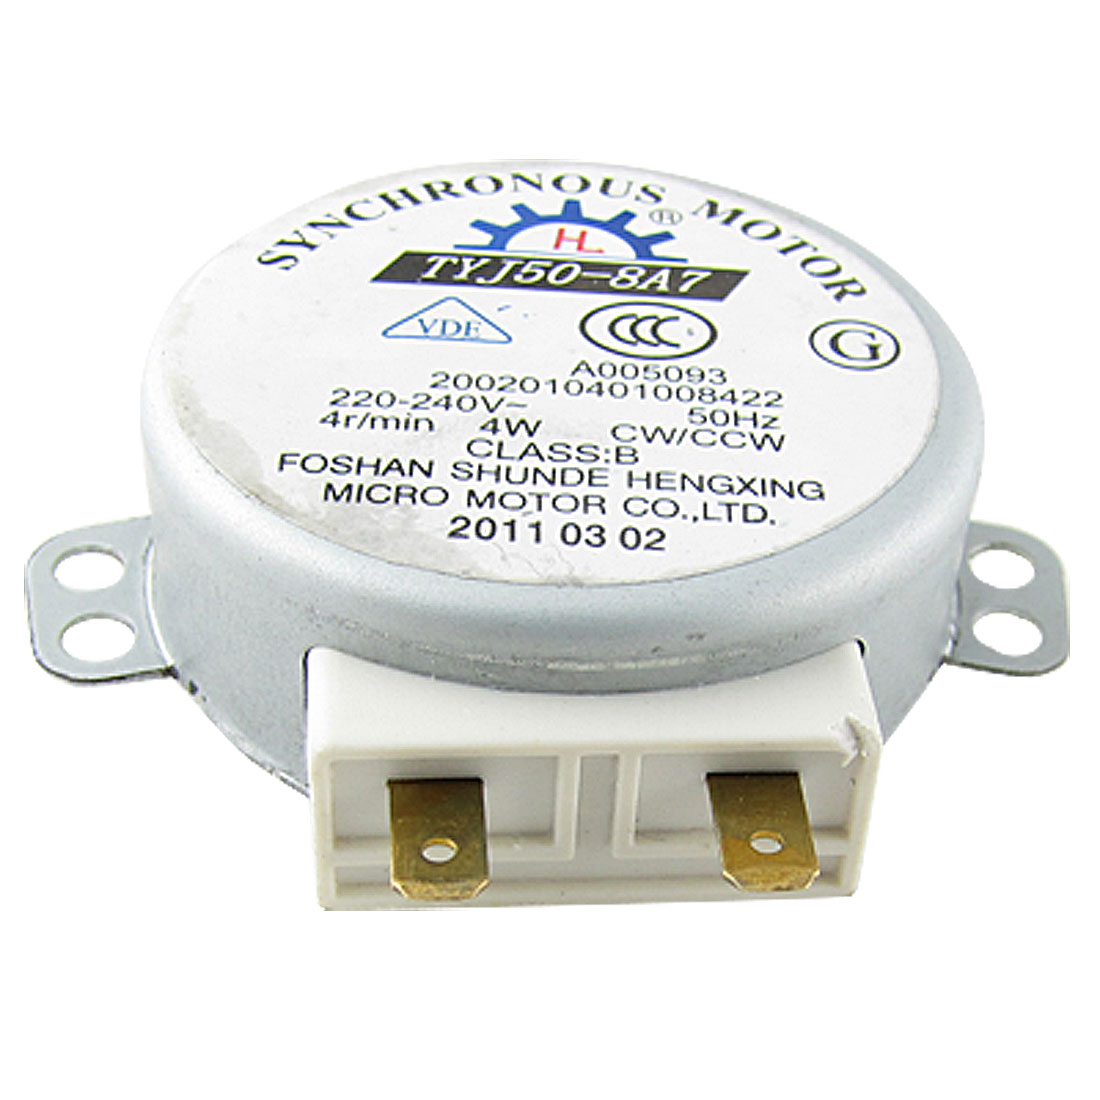 Microwave Oven Turntable Synchronous Motor 4W AC 220-240V 4RPM CW/CCW